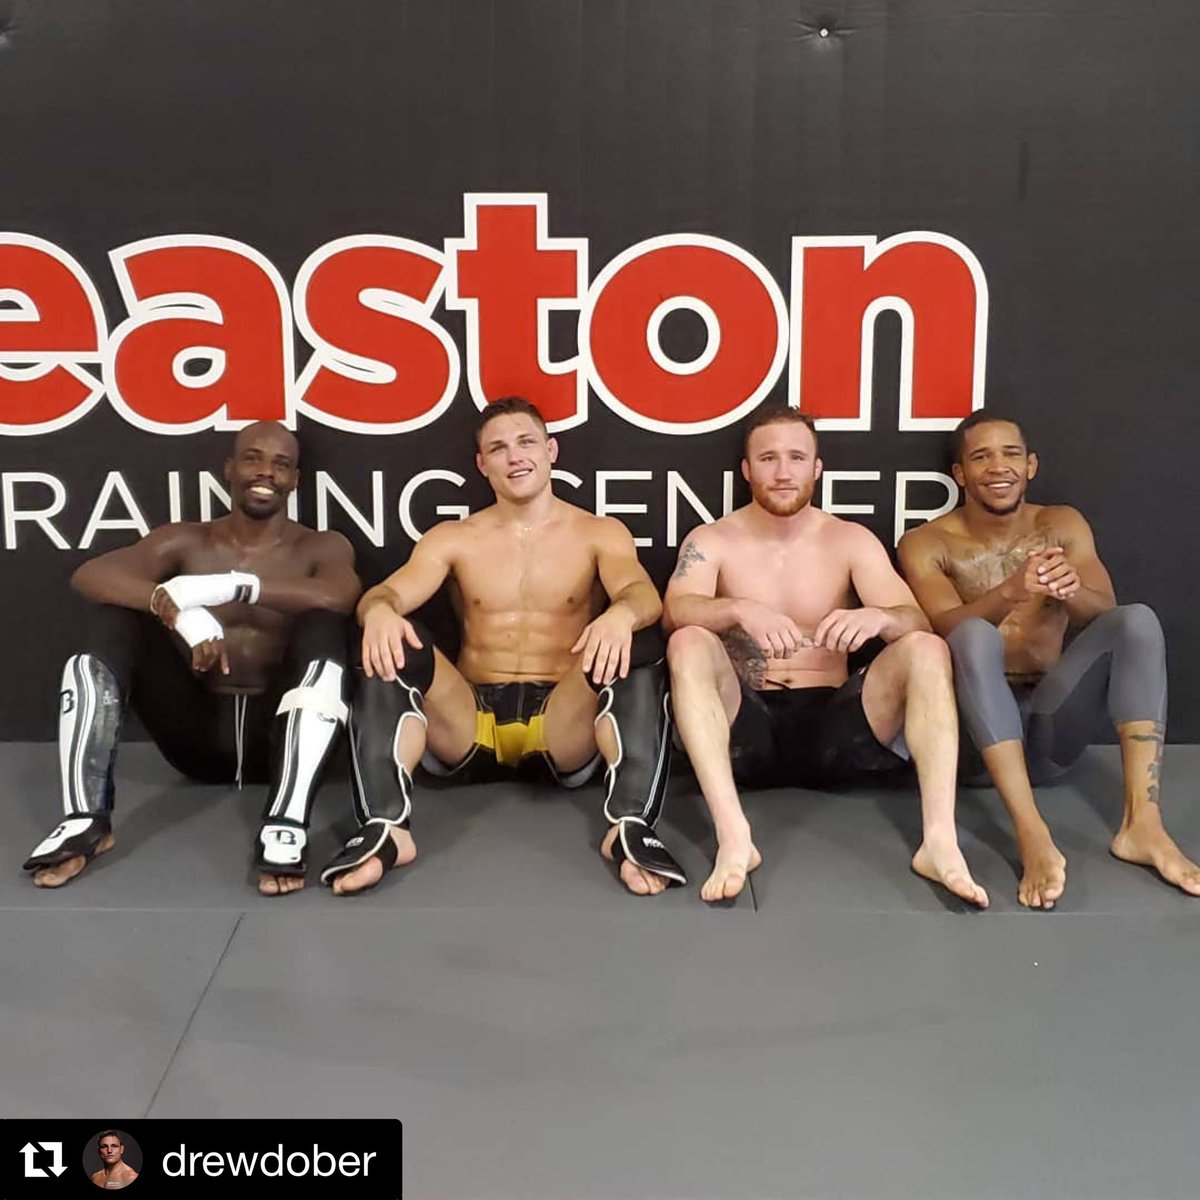 "#Repost @drewdober: Tuesday sparring, somedays you're the hammer and somedays youre the nail. With this crew that changes each round. I'm so grateful for the ass kicking I recieve from these guys. ""I get beat up Monday through Friday, so I can beat someone else up on Saturday"""